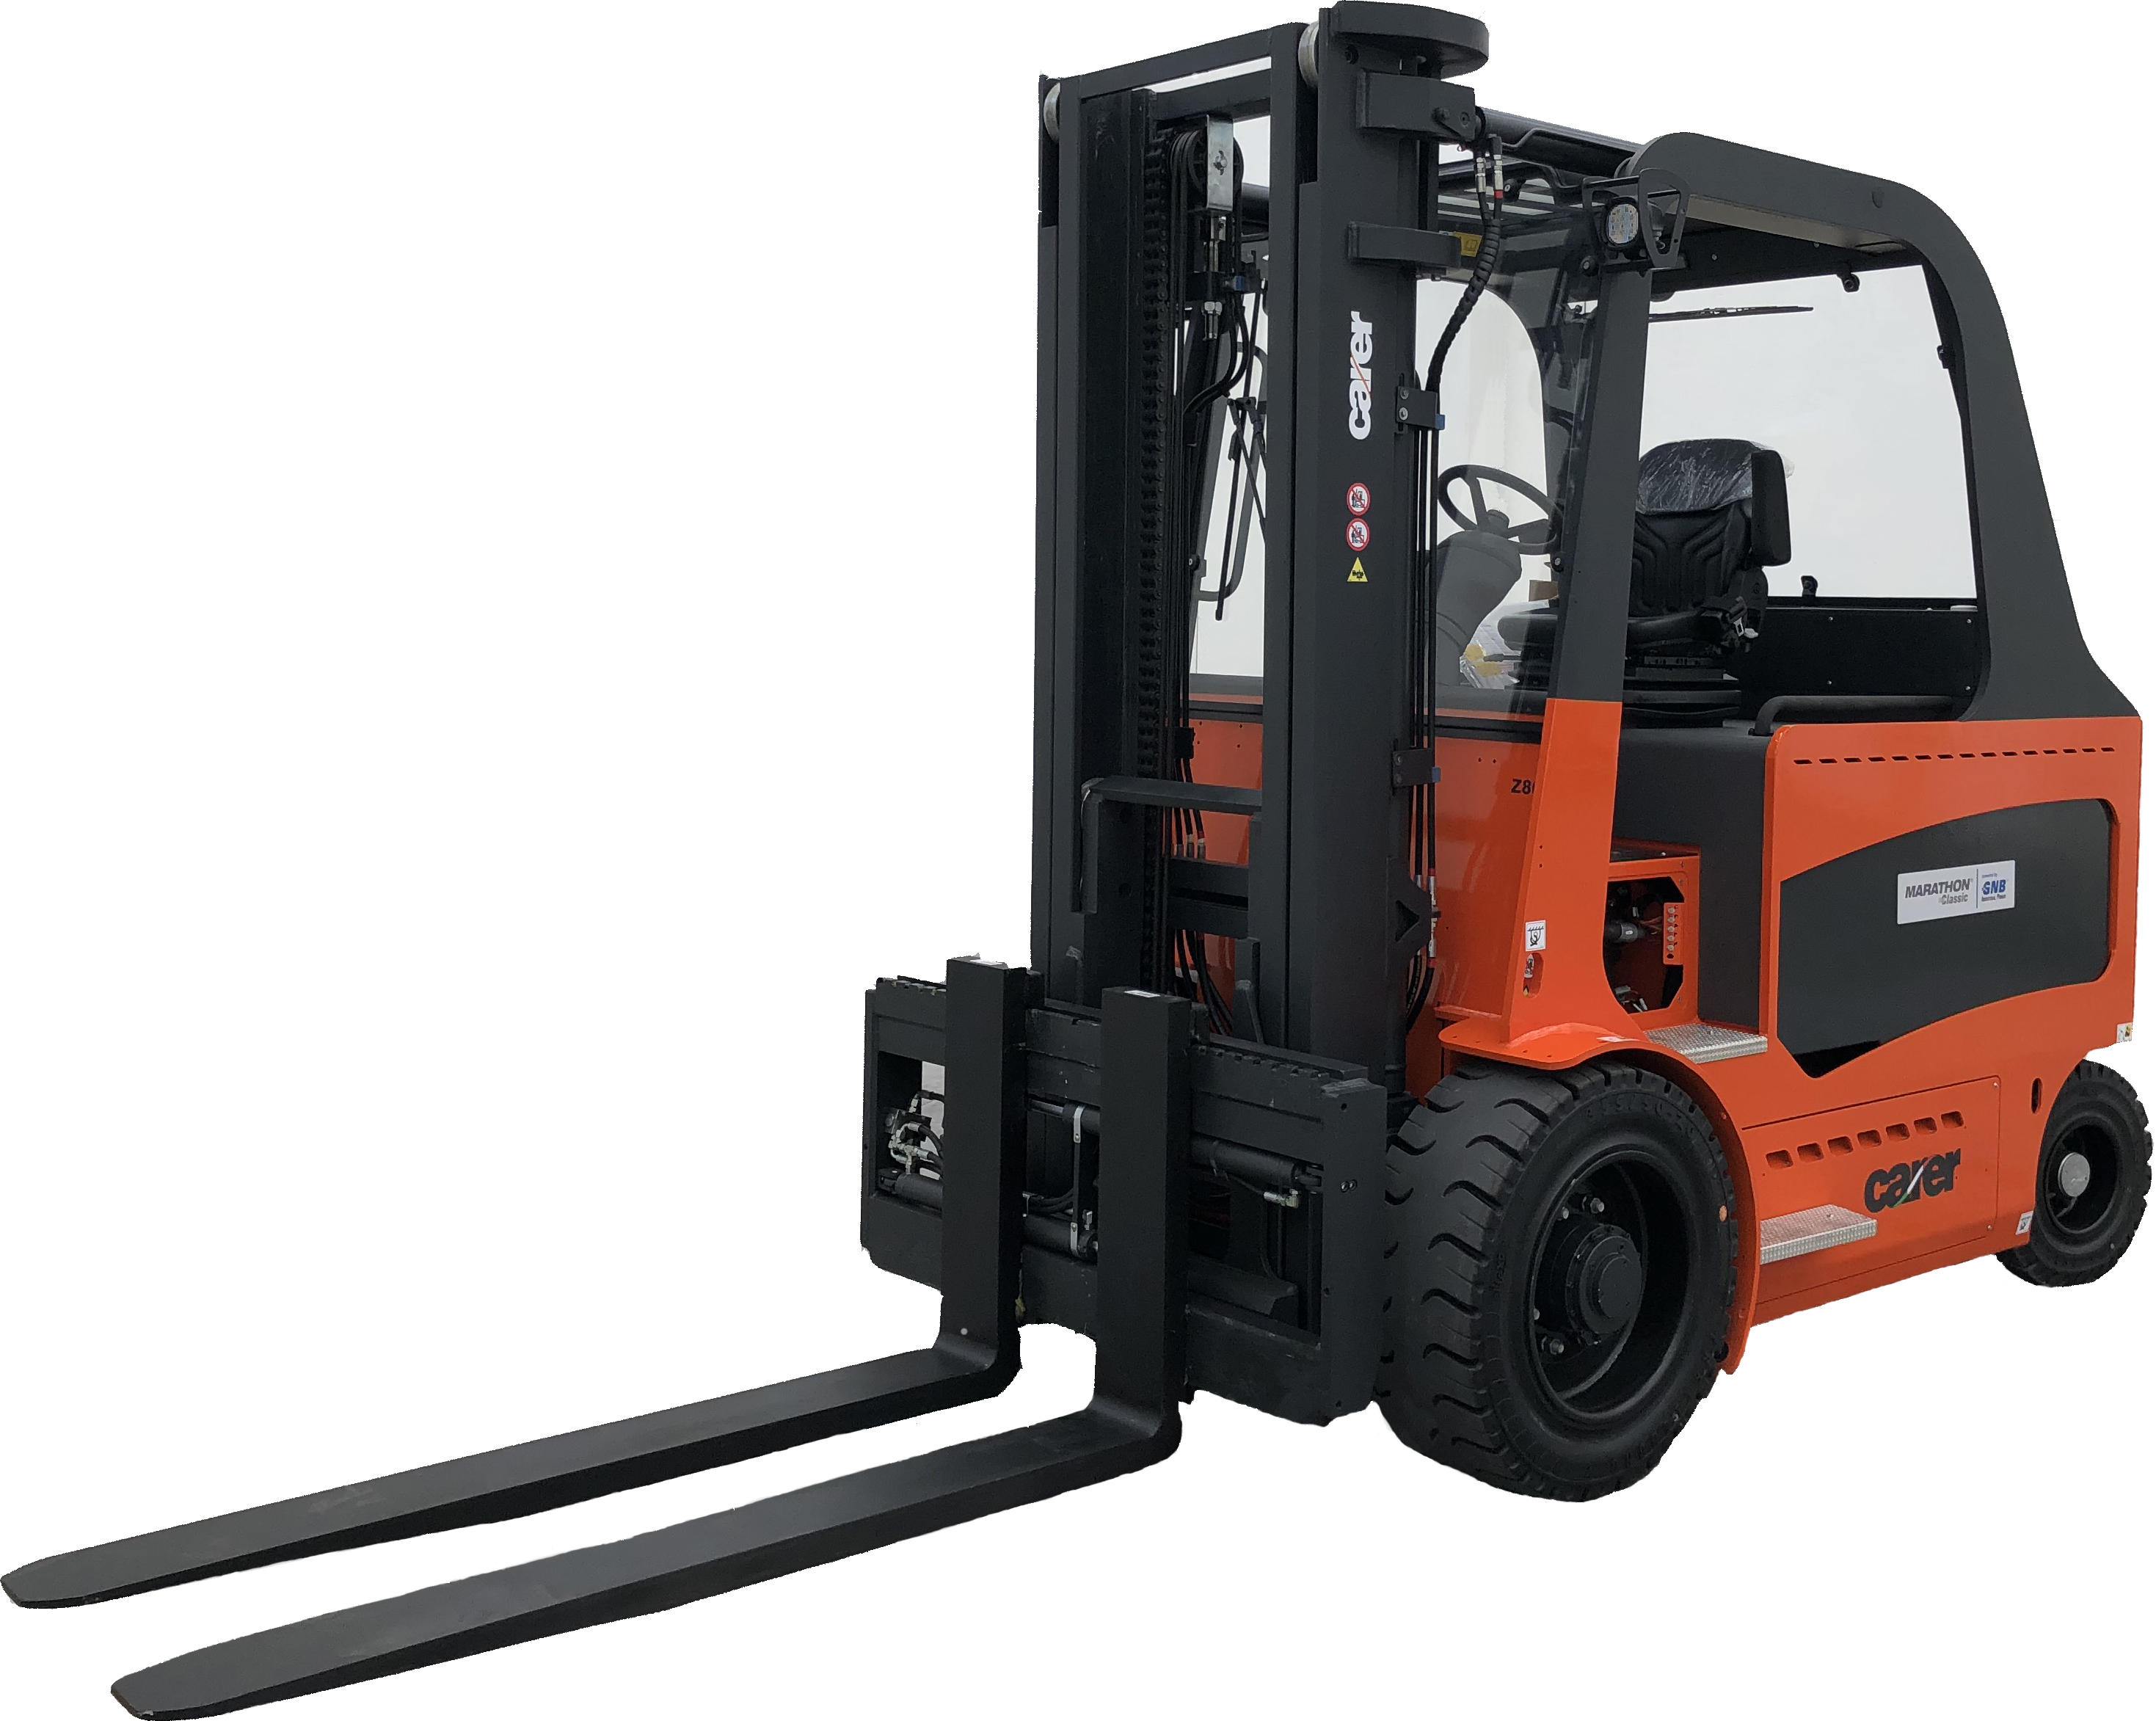 Electric Forklift Z 60-80 H2